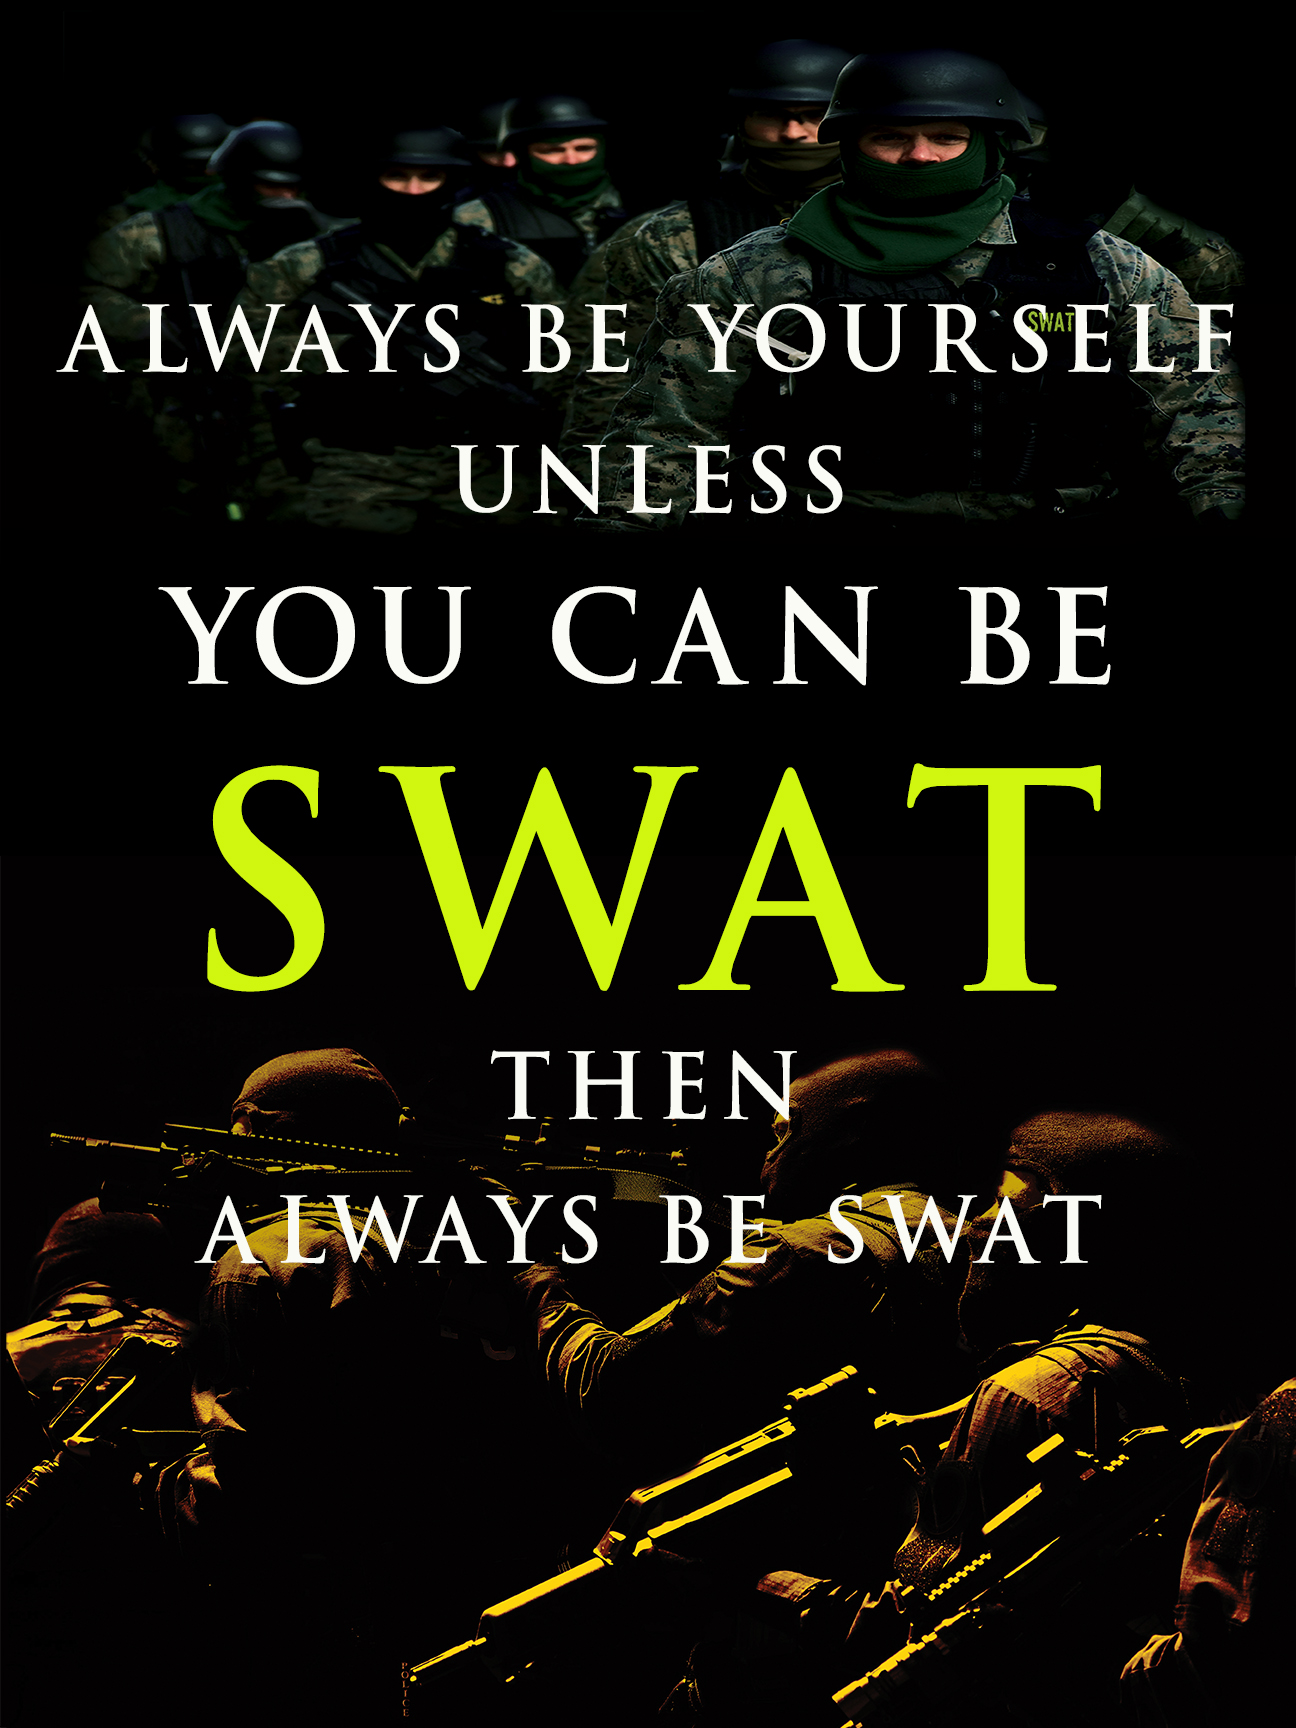 swat team essays In most cases, swat team members are pooled from the ranks of patrol officers, detectives, and even supervisors and sometimes command staff these officers typically serve as swat team members as an additional duty to their regular jobs, so that swat is not a full-time career in itself.